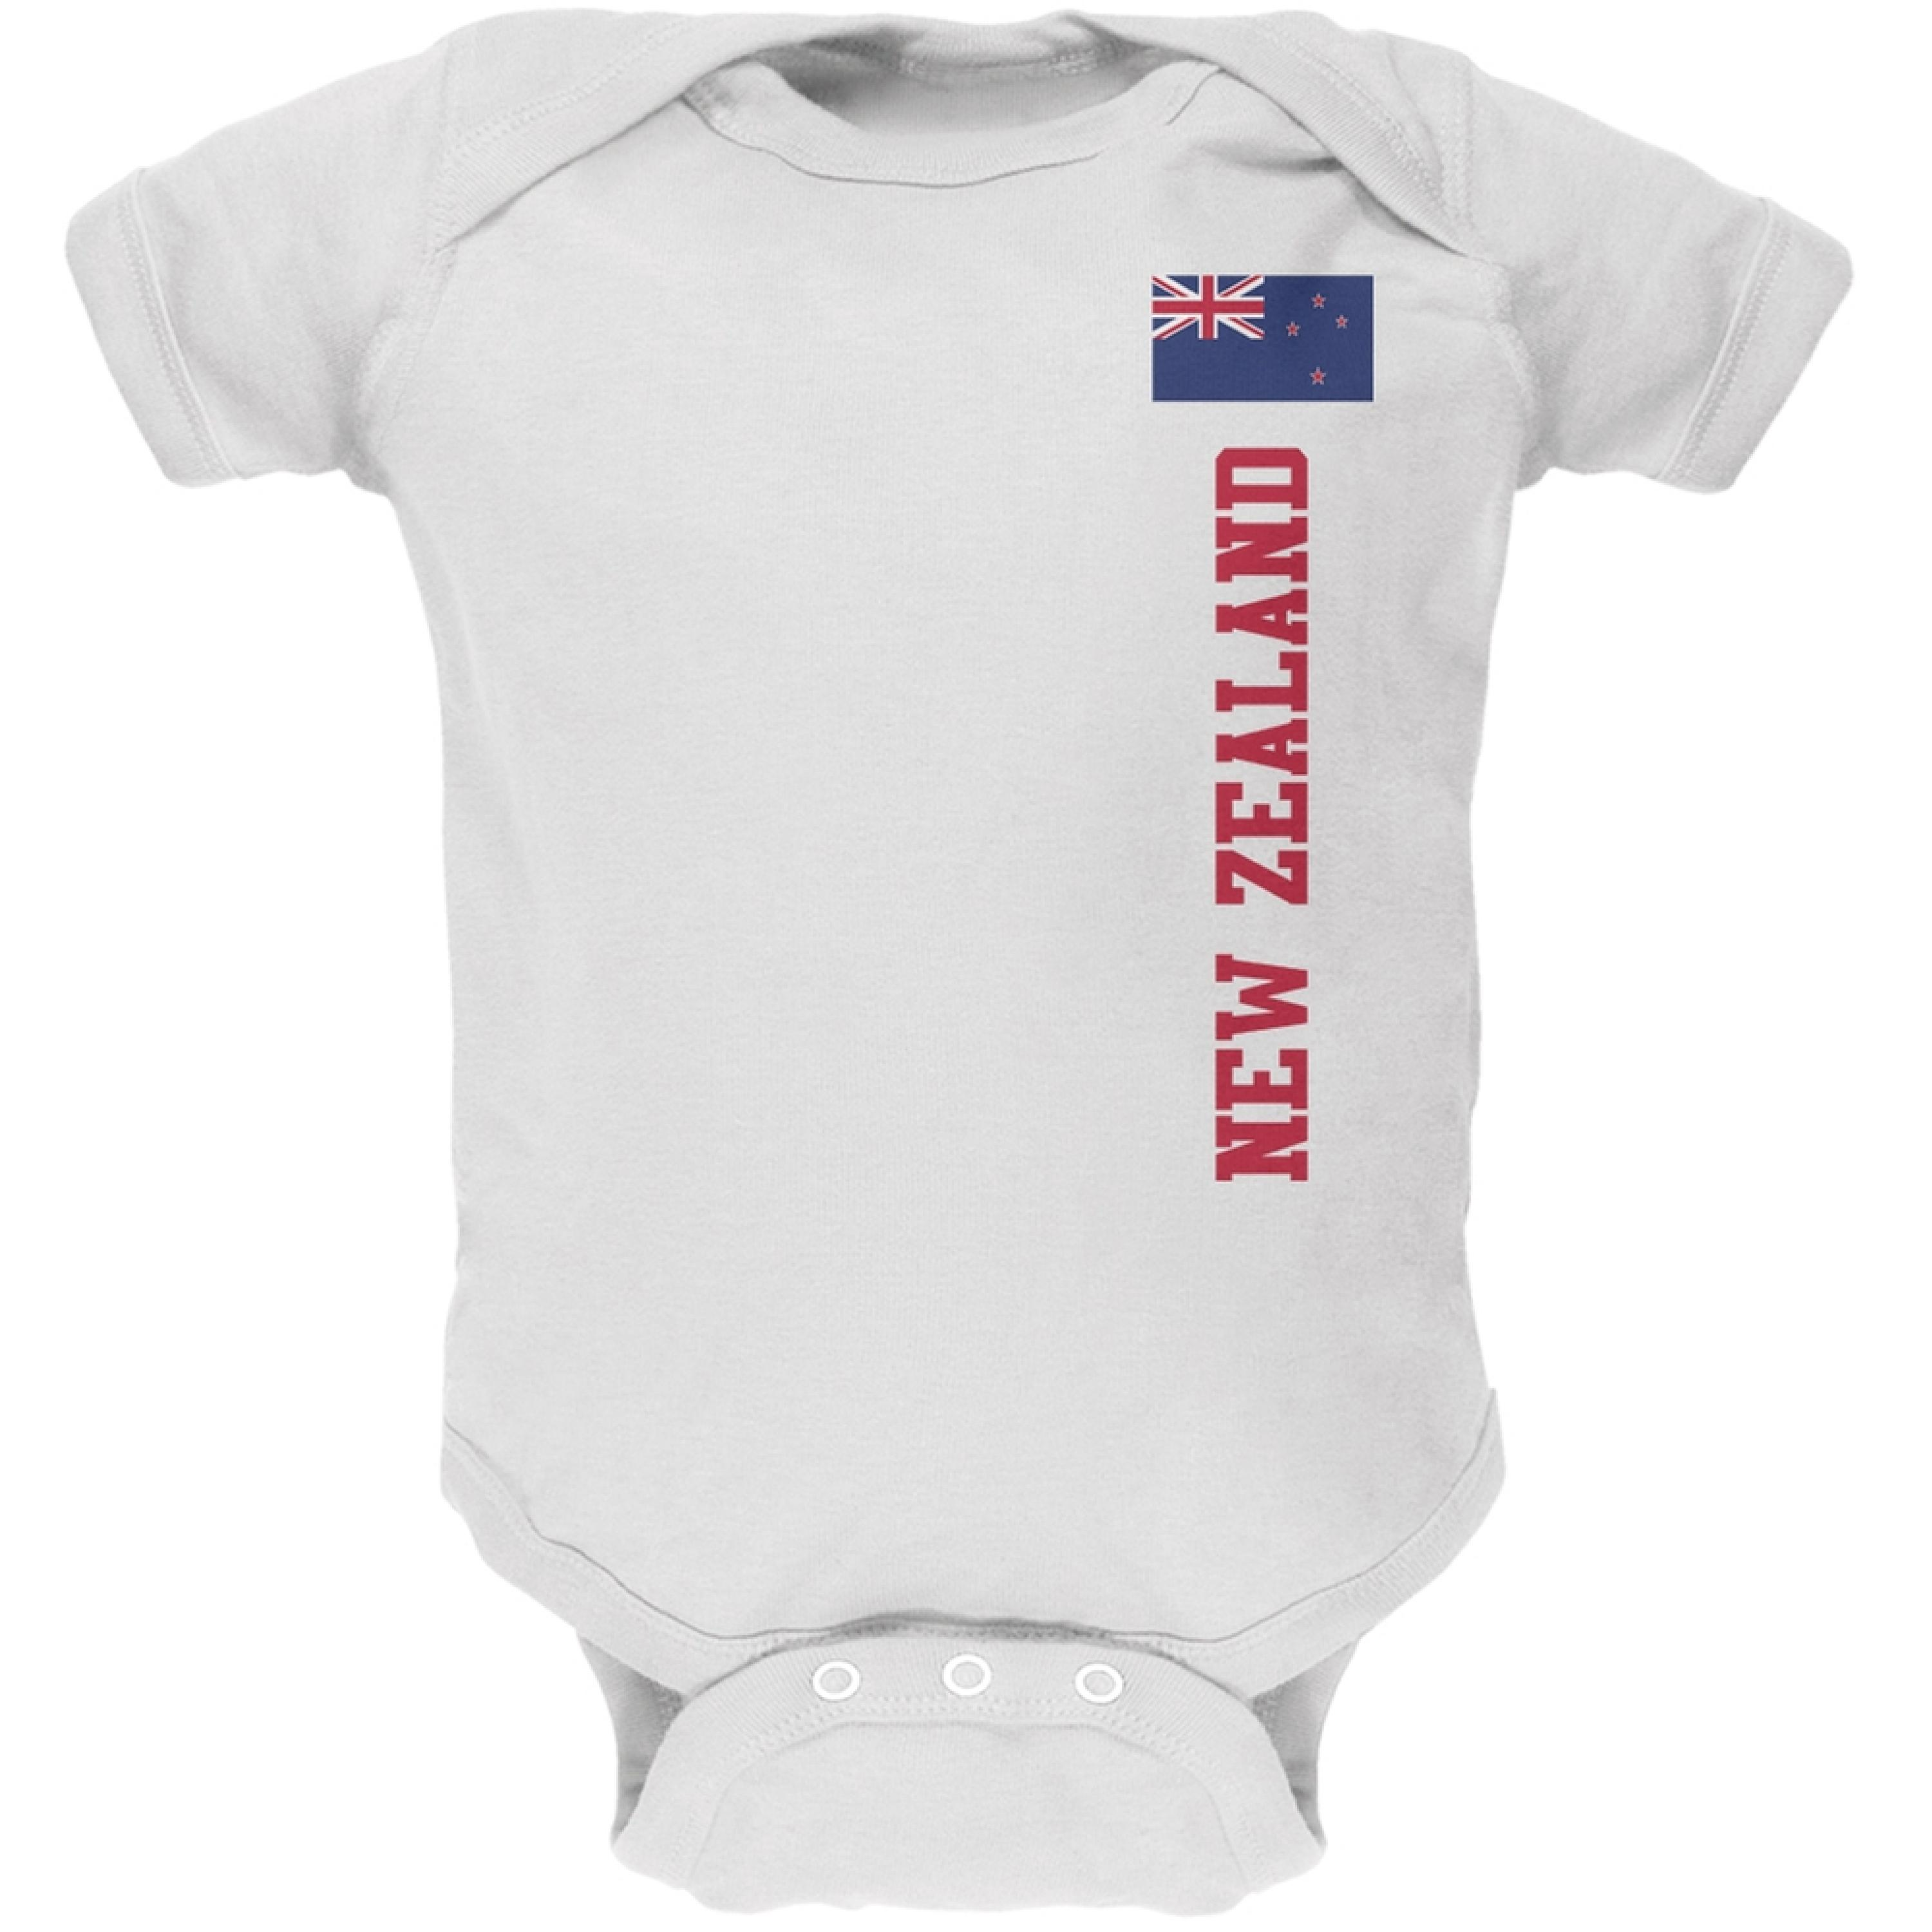 World Cup New Zealand White Soft Baby One Piece